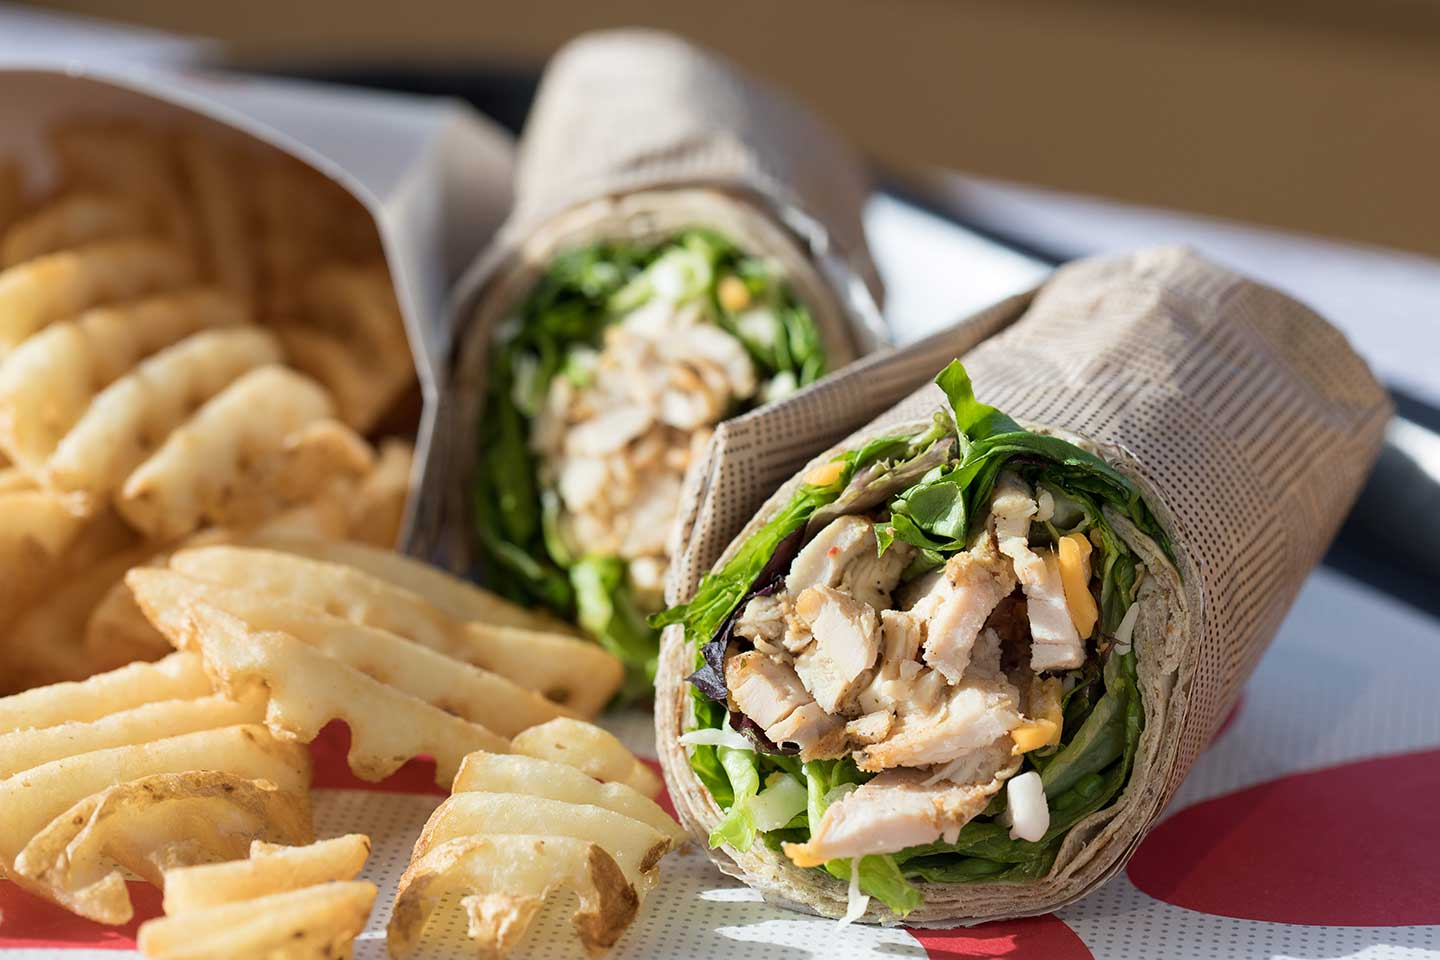 Find Great Recipes, Menu Hacks, and Food Stories | Chick-fil-A